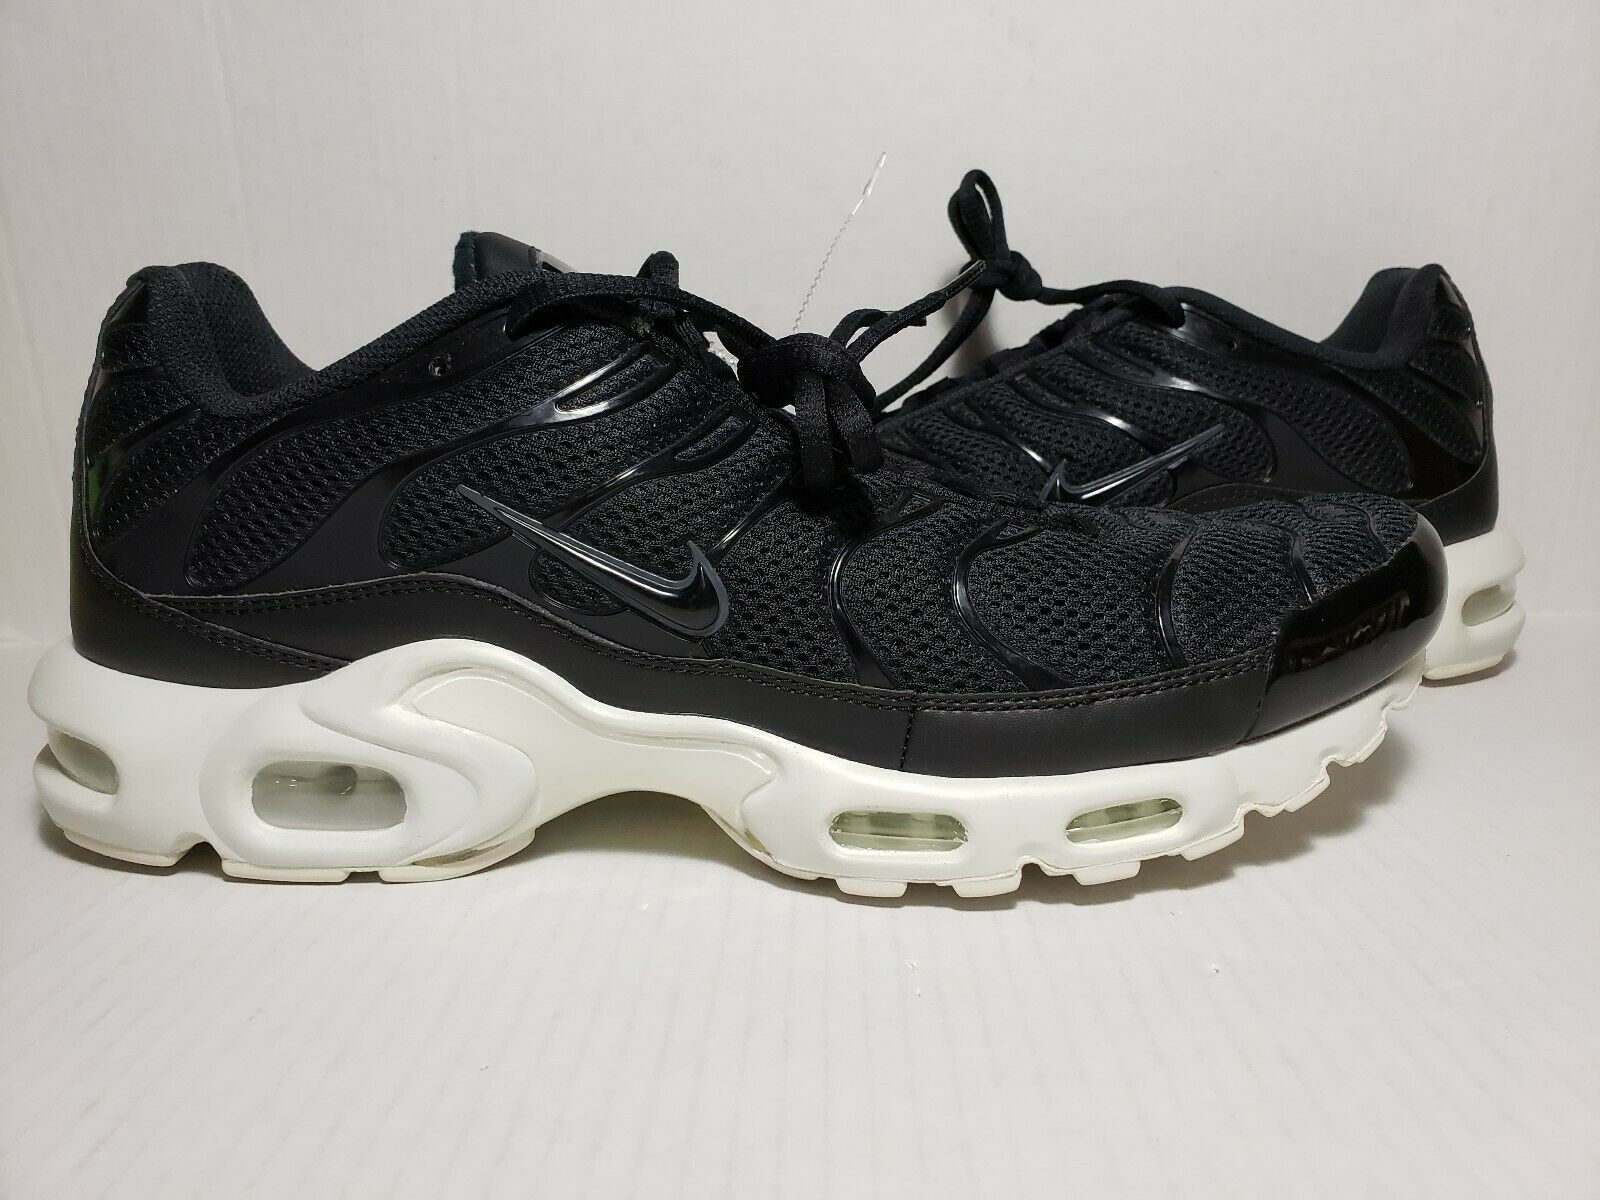 Nike Air Max Plus BR TN Tuned Running shoes Black Summit White 898014-001 sz 13